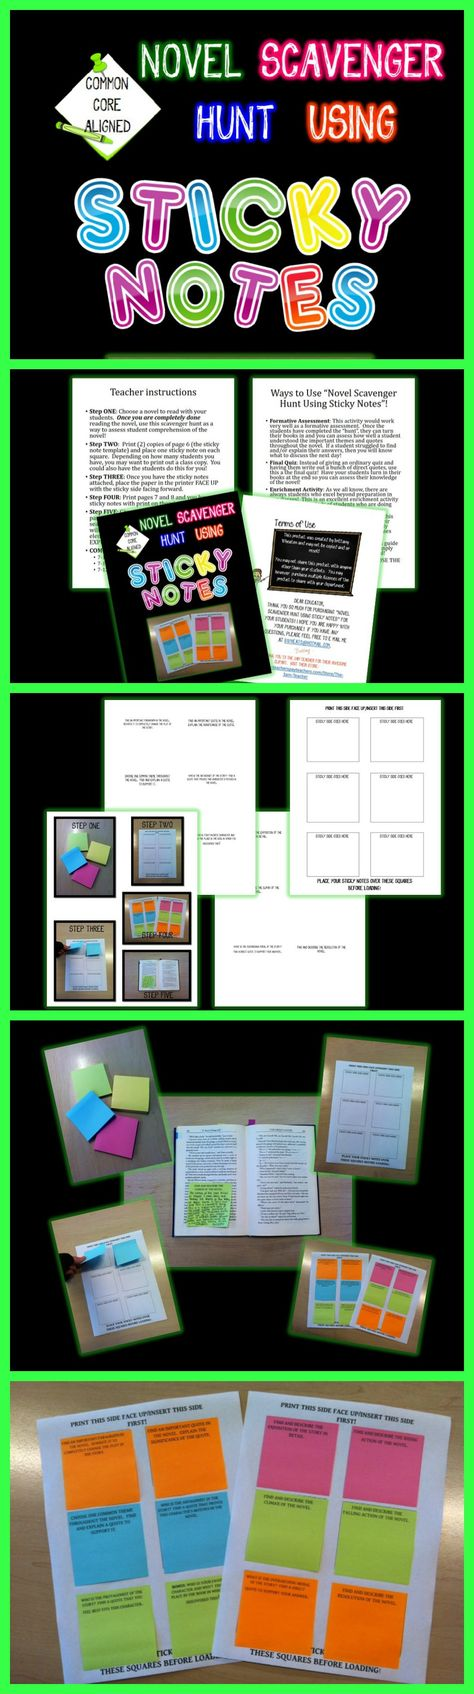 Make learning fun and engaging by sending your students on a novel scavenger hunt using sticky notes with printed questions on them!  $